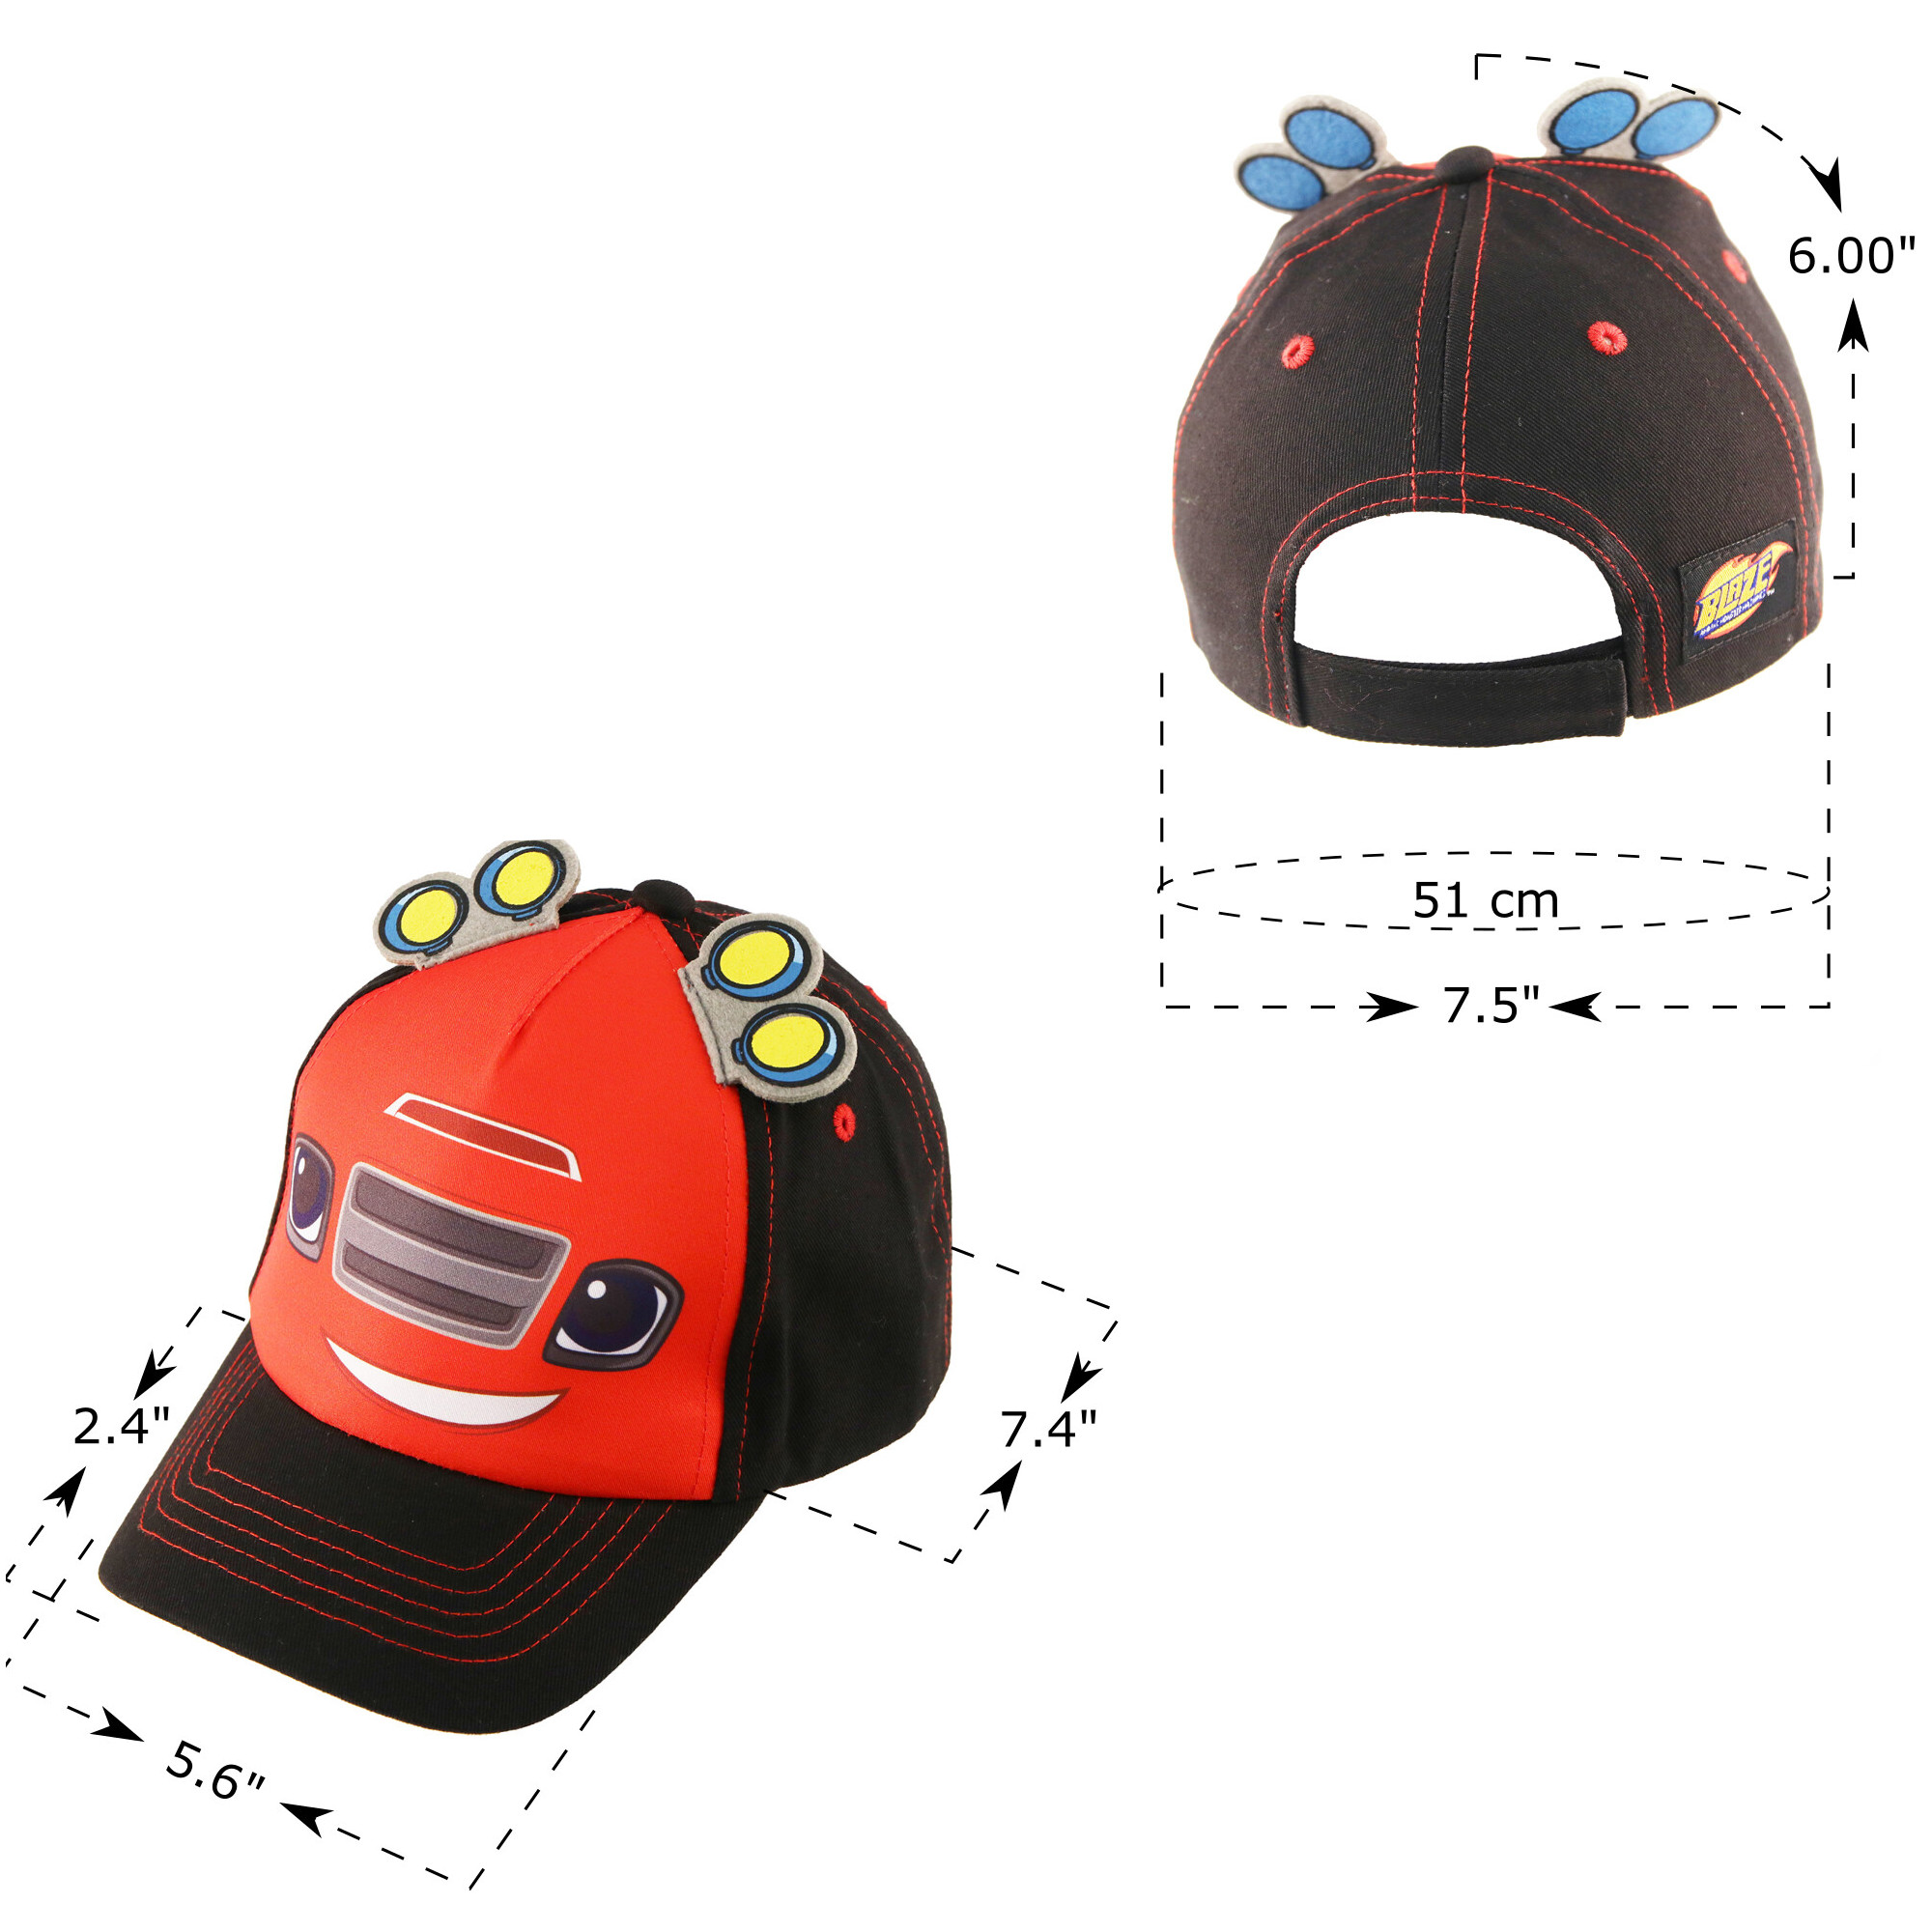 online store 88228 94db2 BLAZE AND THE MONSTER MACHINES - Toddler Boys Blaze And The Monster Machines  Cotton Baseball Cap, Age 2-5 - Walmart.com